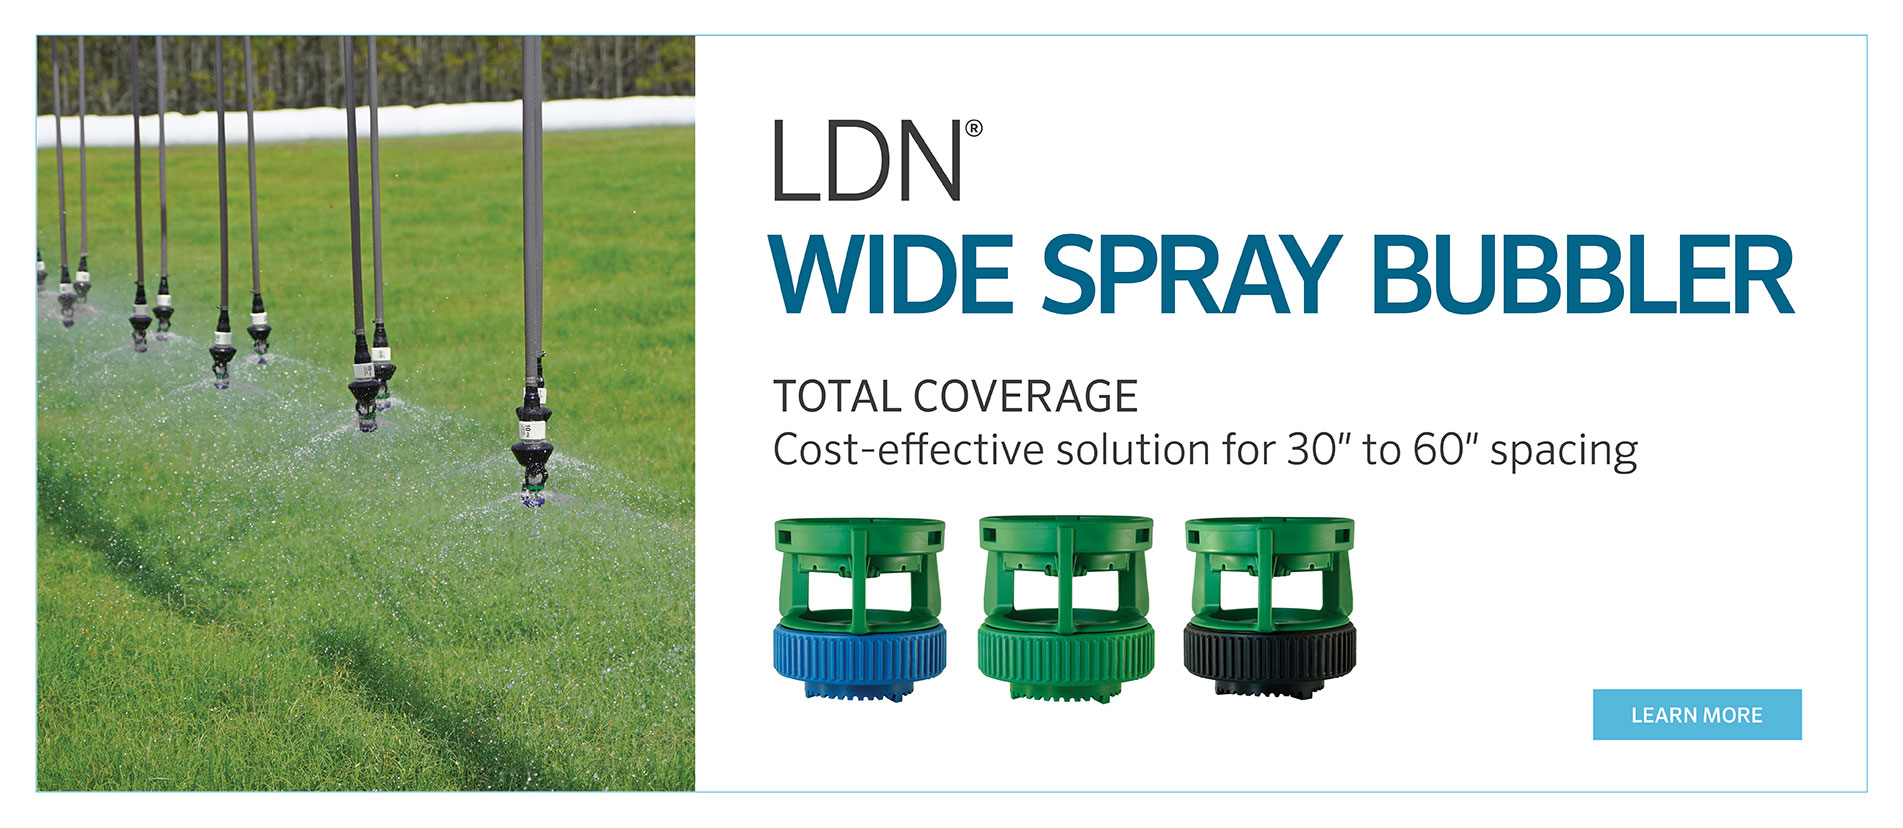 LDN® Wide Spray Bubbler - total coverage solution for 30″ to 60″ spacing